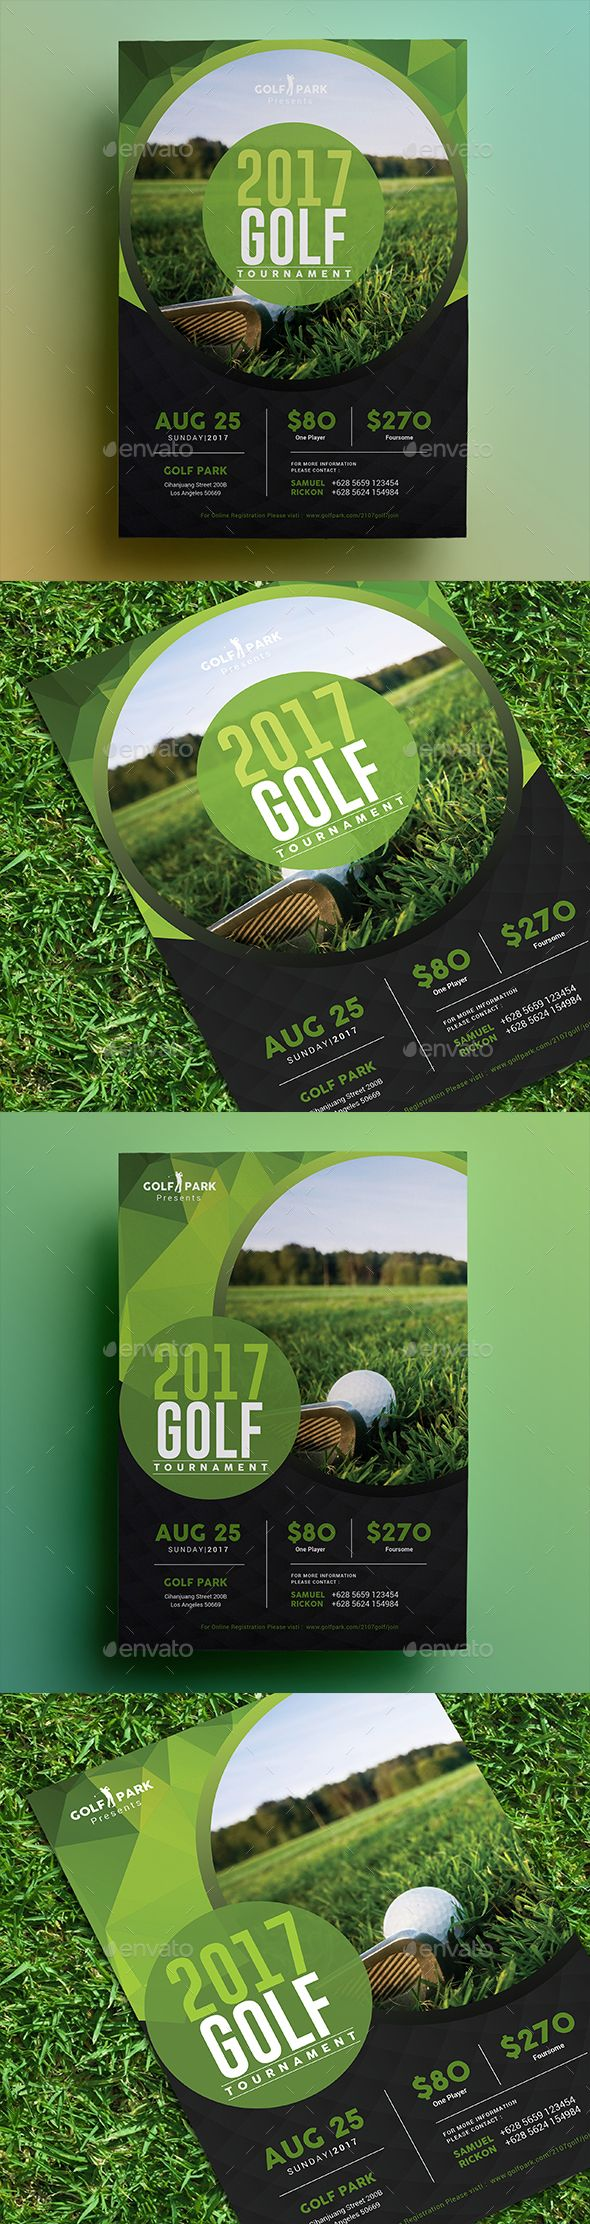 Golf Tournament Flyer 02 by aarleykaiven Golf Tournament Flyer, can be used for your company event, charity event, etc File Features : 2 PSD Designs Size A4 (8.2x11.6